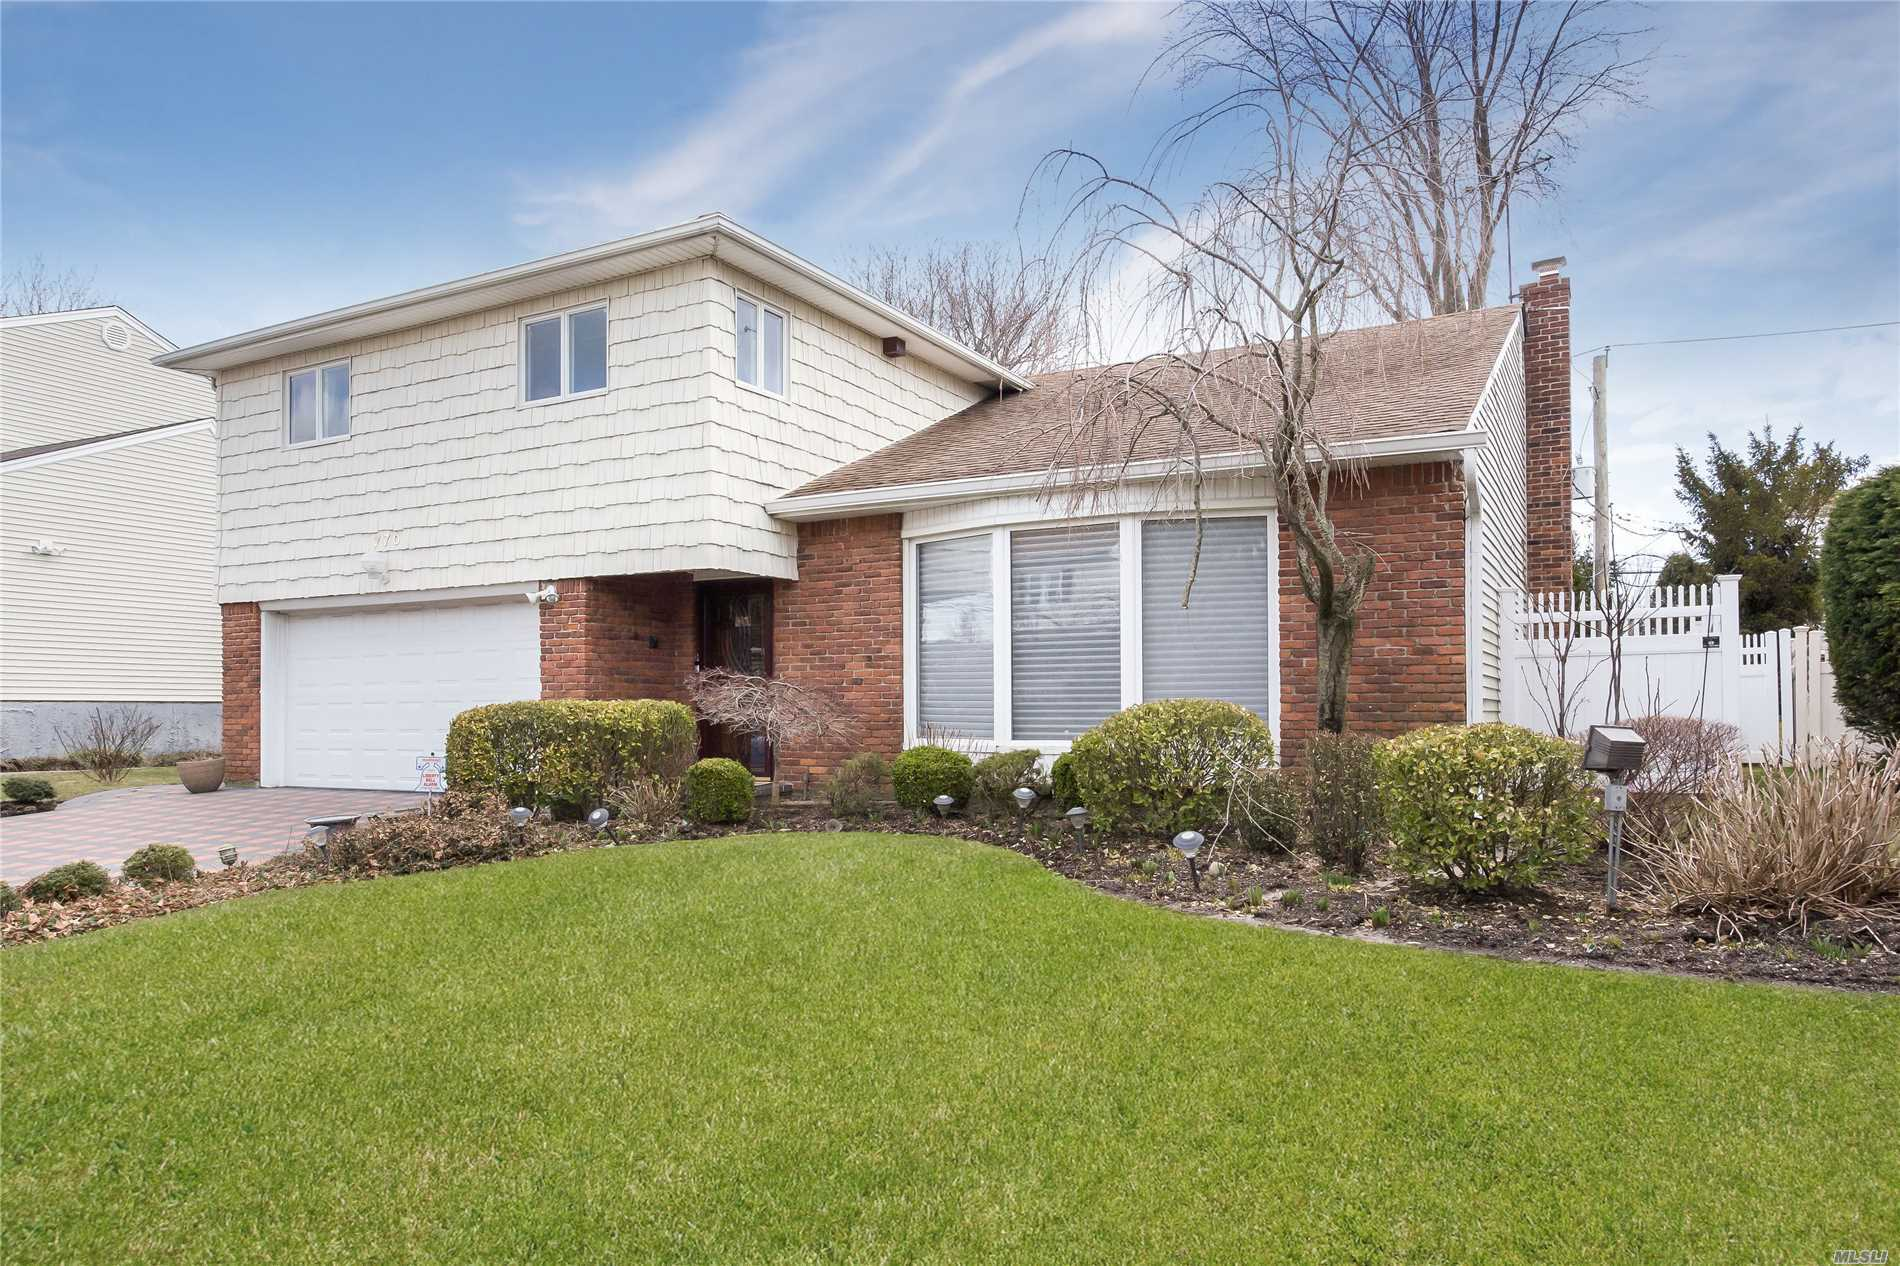 Beautifully Maintained Home On Quiet Street. Large Rooms Plus Finished Basement. Great Deck For Entertaining. Lovely Master Bedroom With Walk-In Closets Plus 3 Additional Bedrooms. Move Right In To This Wonderful Home.